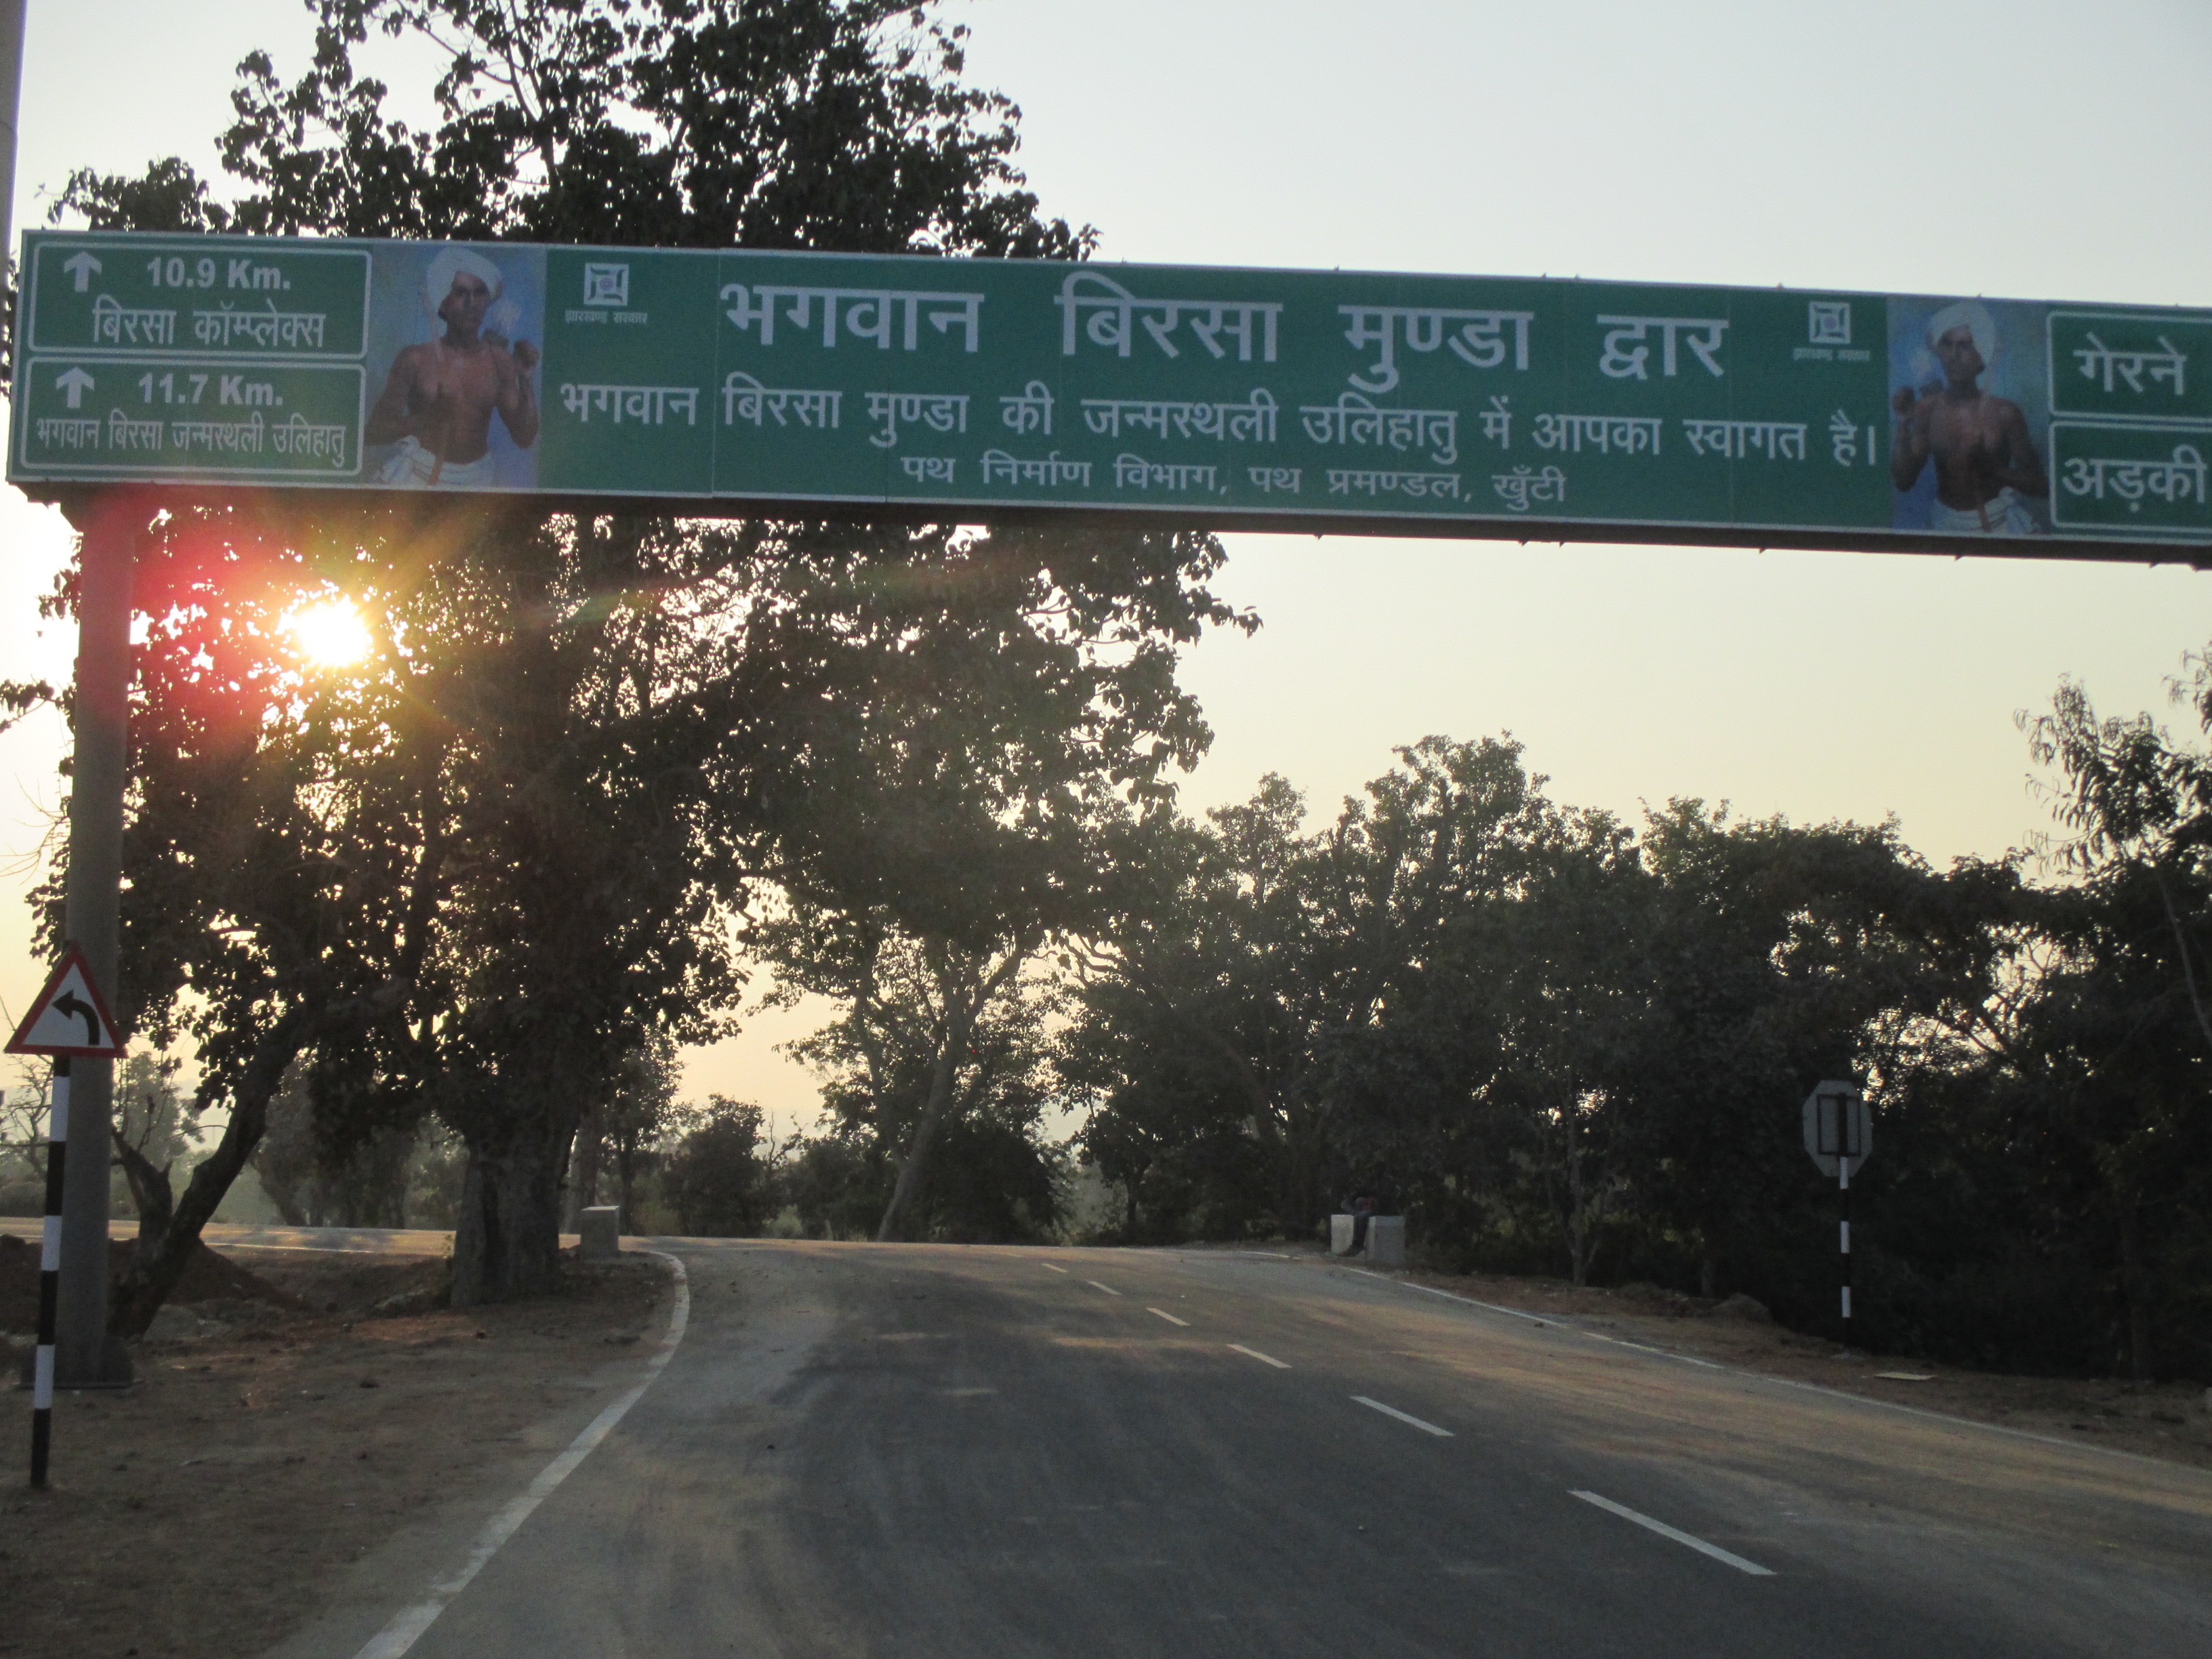 The road that leads to Ulihatu, Birsa Munda's birthplace has been recently paved. Photo credit: Anumeha Yadav